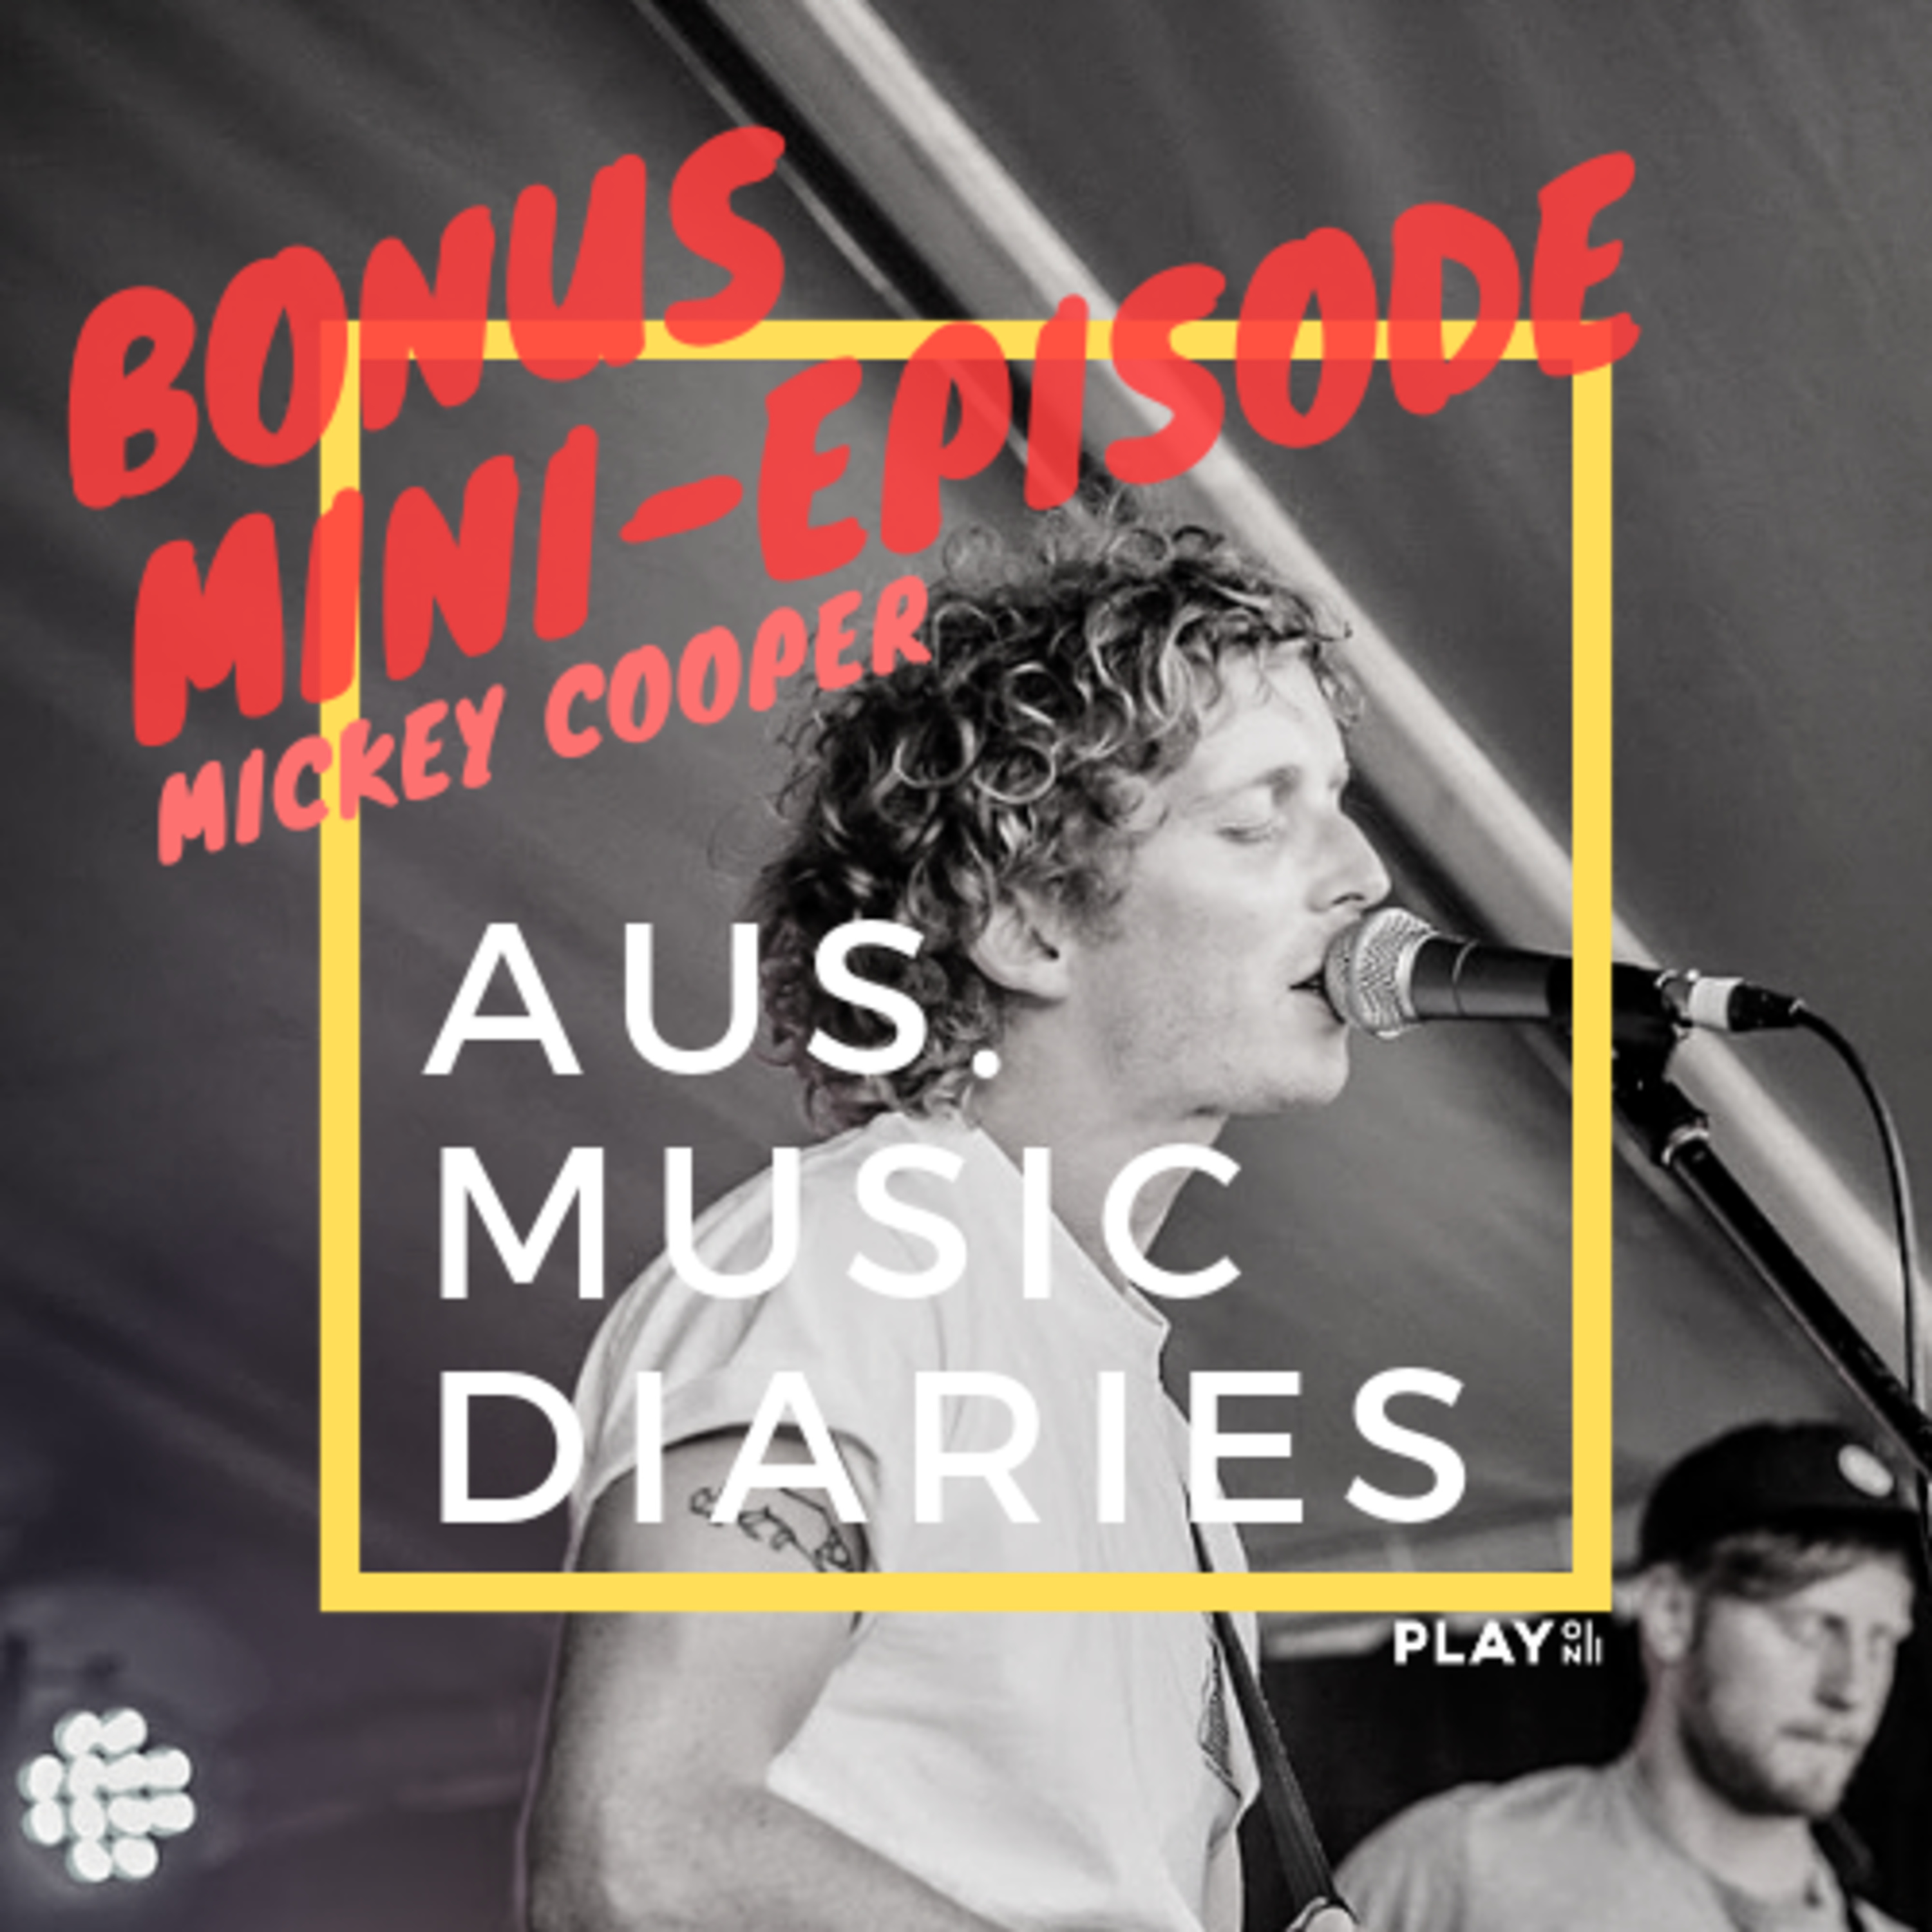 Bonus Guest Episode: Mickey Cooper from Kilns chats bare about Merpire